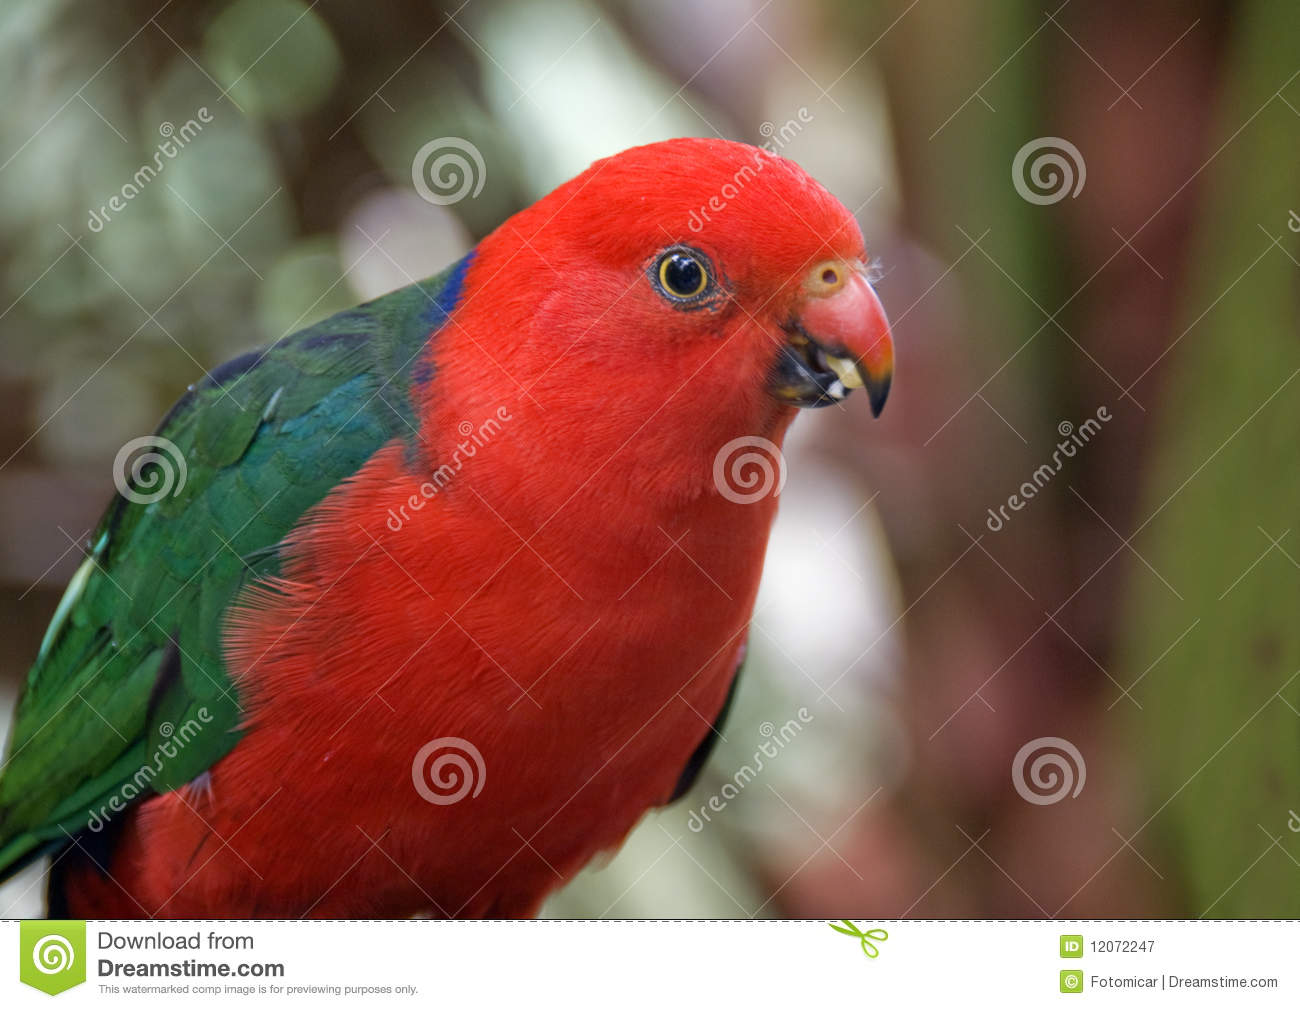 Red And Green Parrot Royalty Free Stock Photography - Image: 12072247